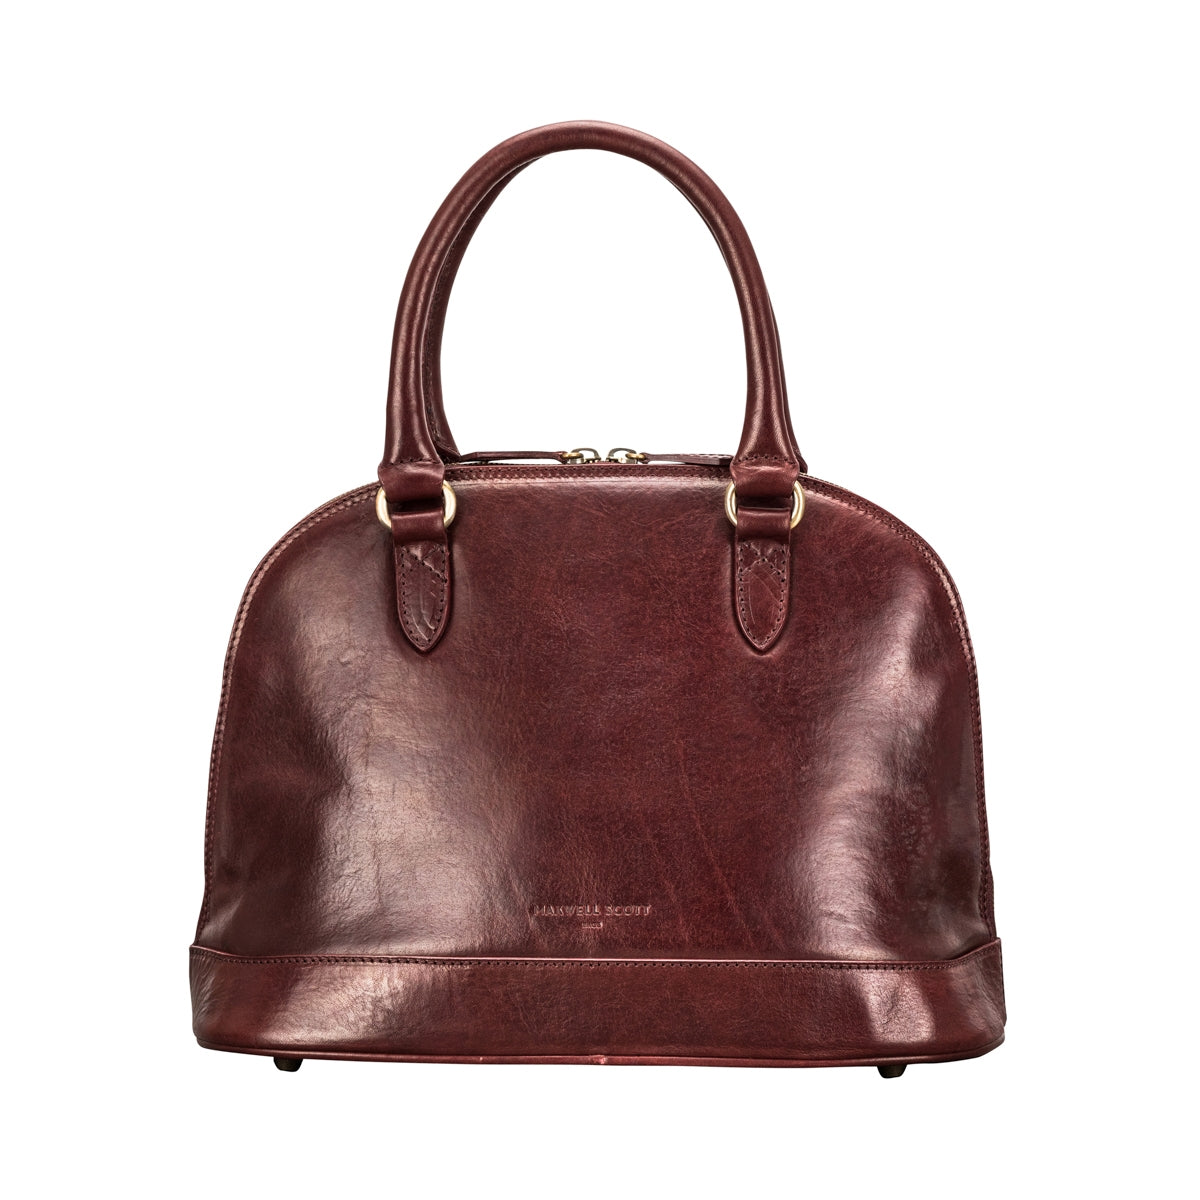 Image 4 of the 'Rosa' Italian Wine Leather Classic Ladies Handbag